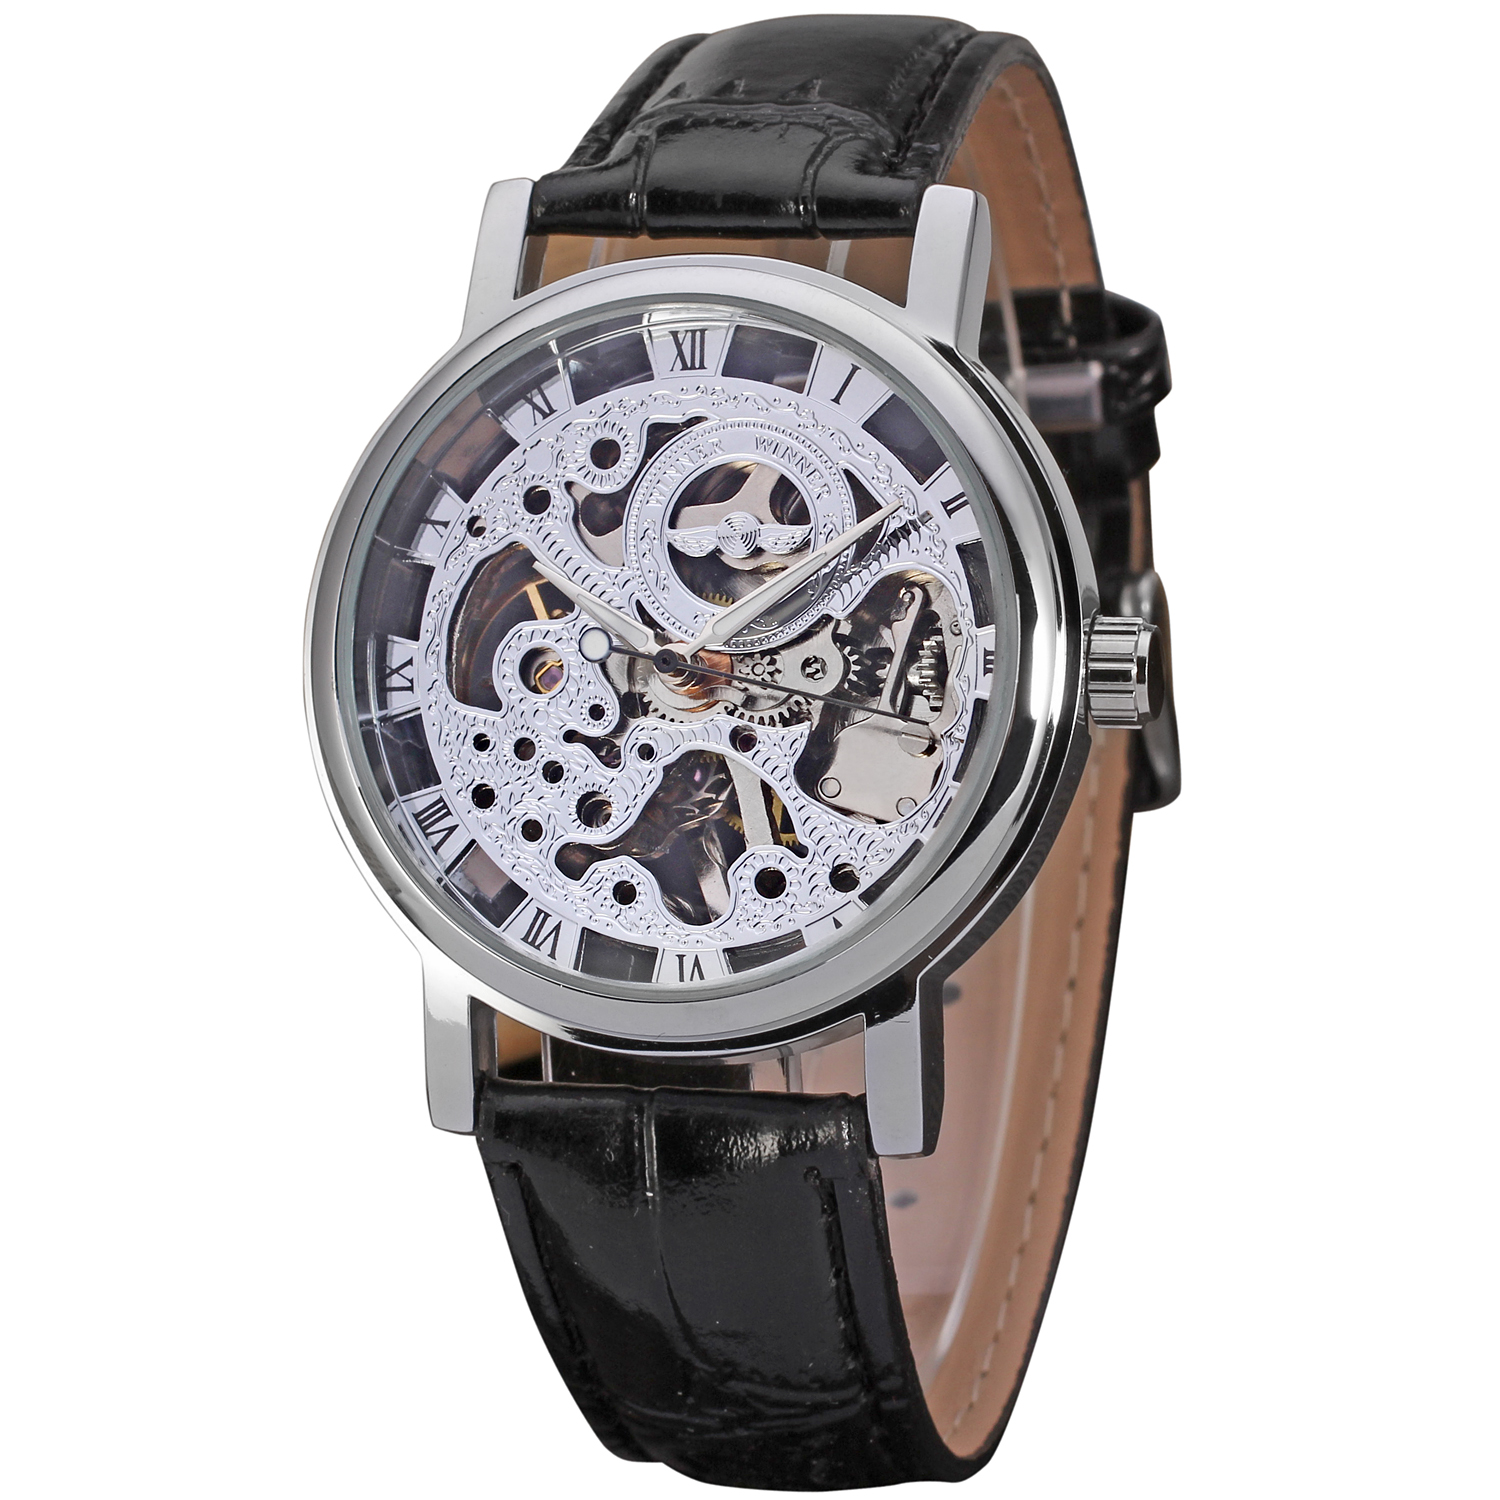 T-WINNER Fashion Business Men's Waterproof Watch Casual Leather Strap Hollow Dial Automatic Mechanical Watches